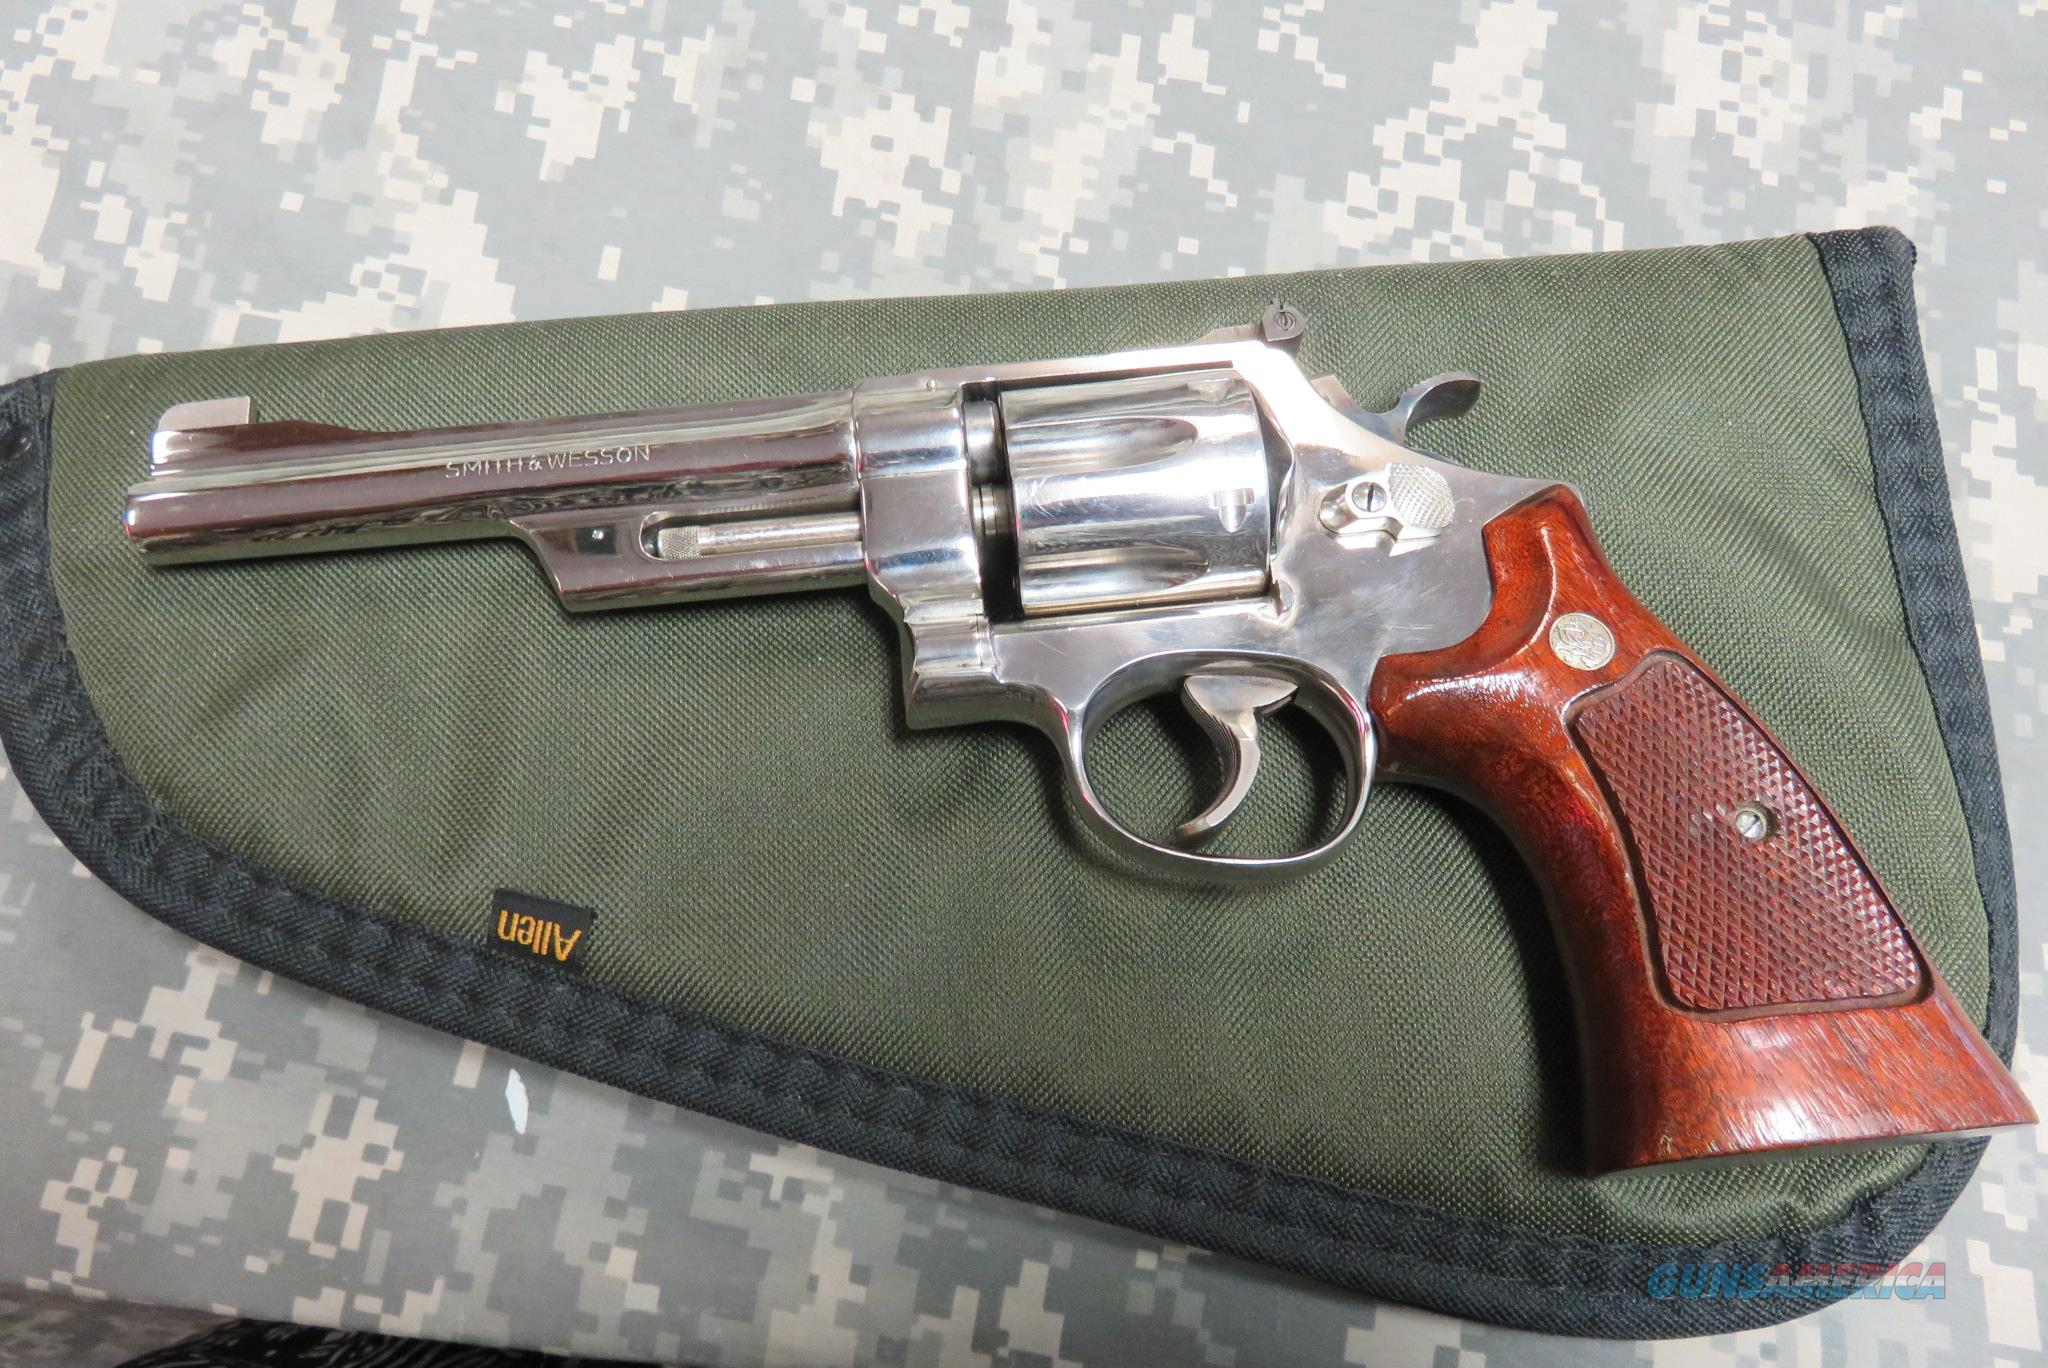 "SMITH & WESSON MODEL 27-2 357 MAGNUM 6"" NICKEL MFG IN 1976-77  Guns > Pistols > Smith & Wesson Revolvers > Full Frame Revolver"